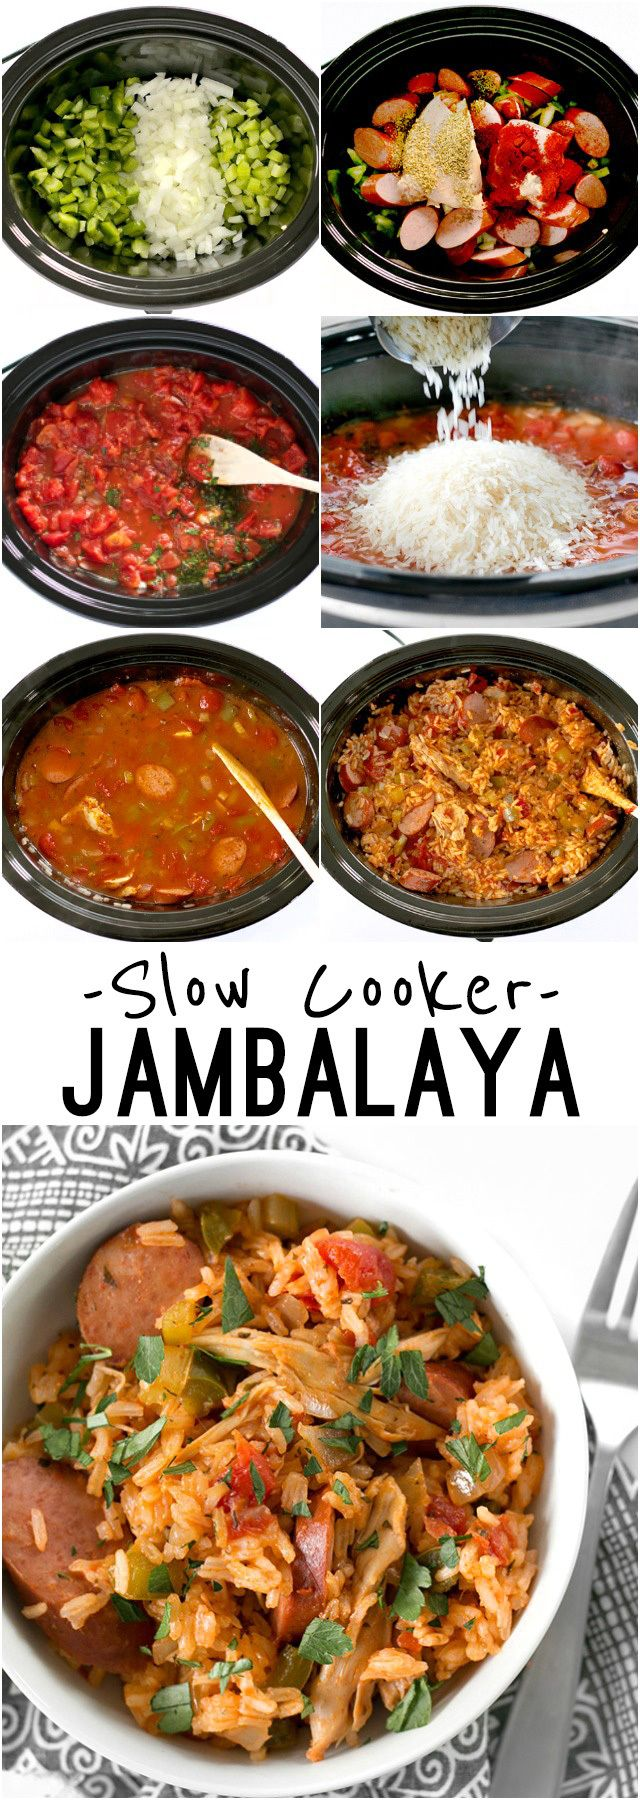 Slow Cooker Jambalaya has all the big flavor of the classic Louisiana dish with half the effort. @budgetbytes